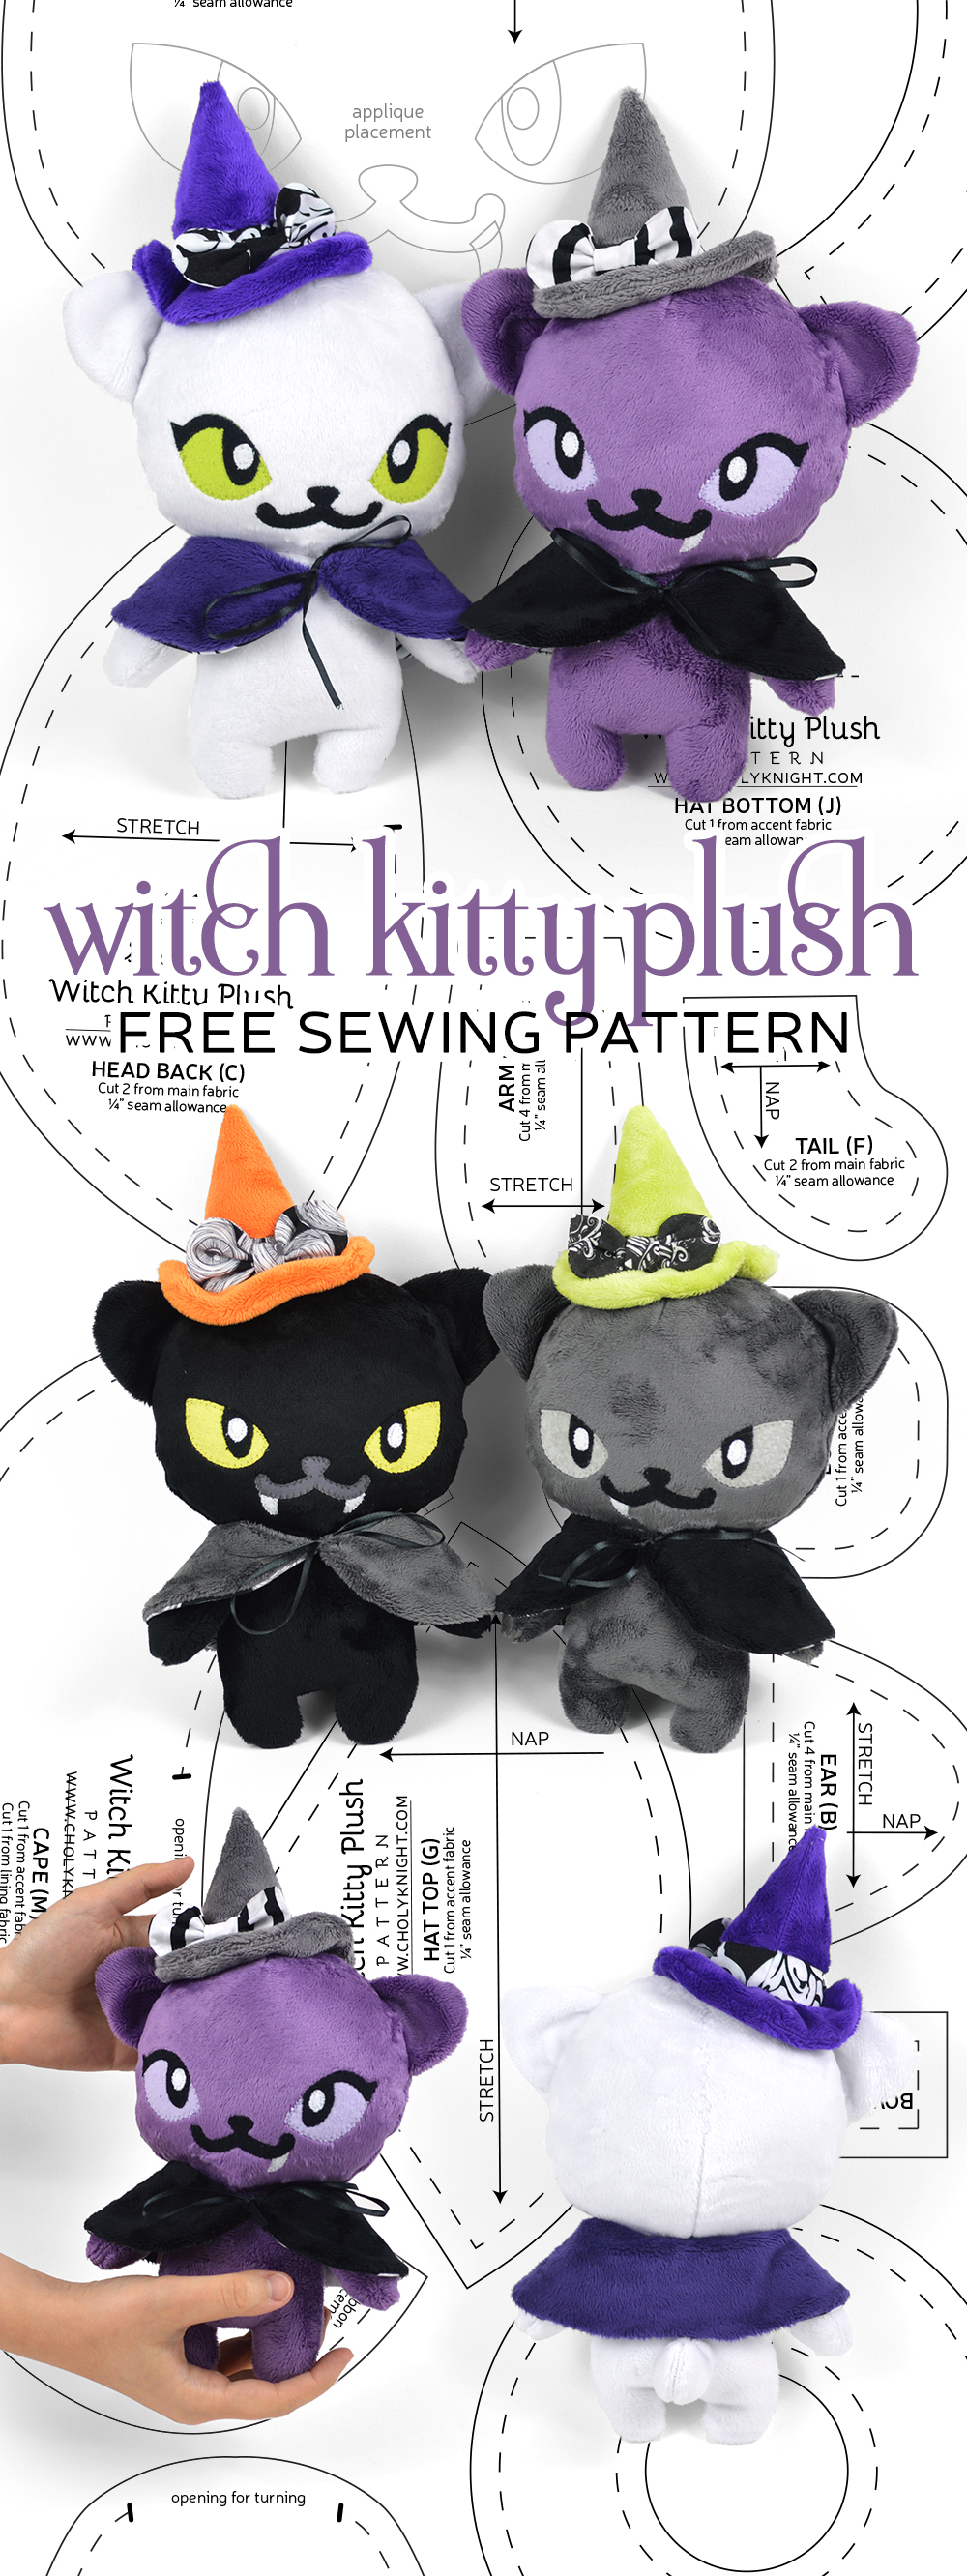 9cb9c6aaff Witch Kitty Plush